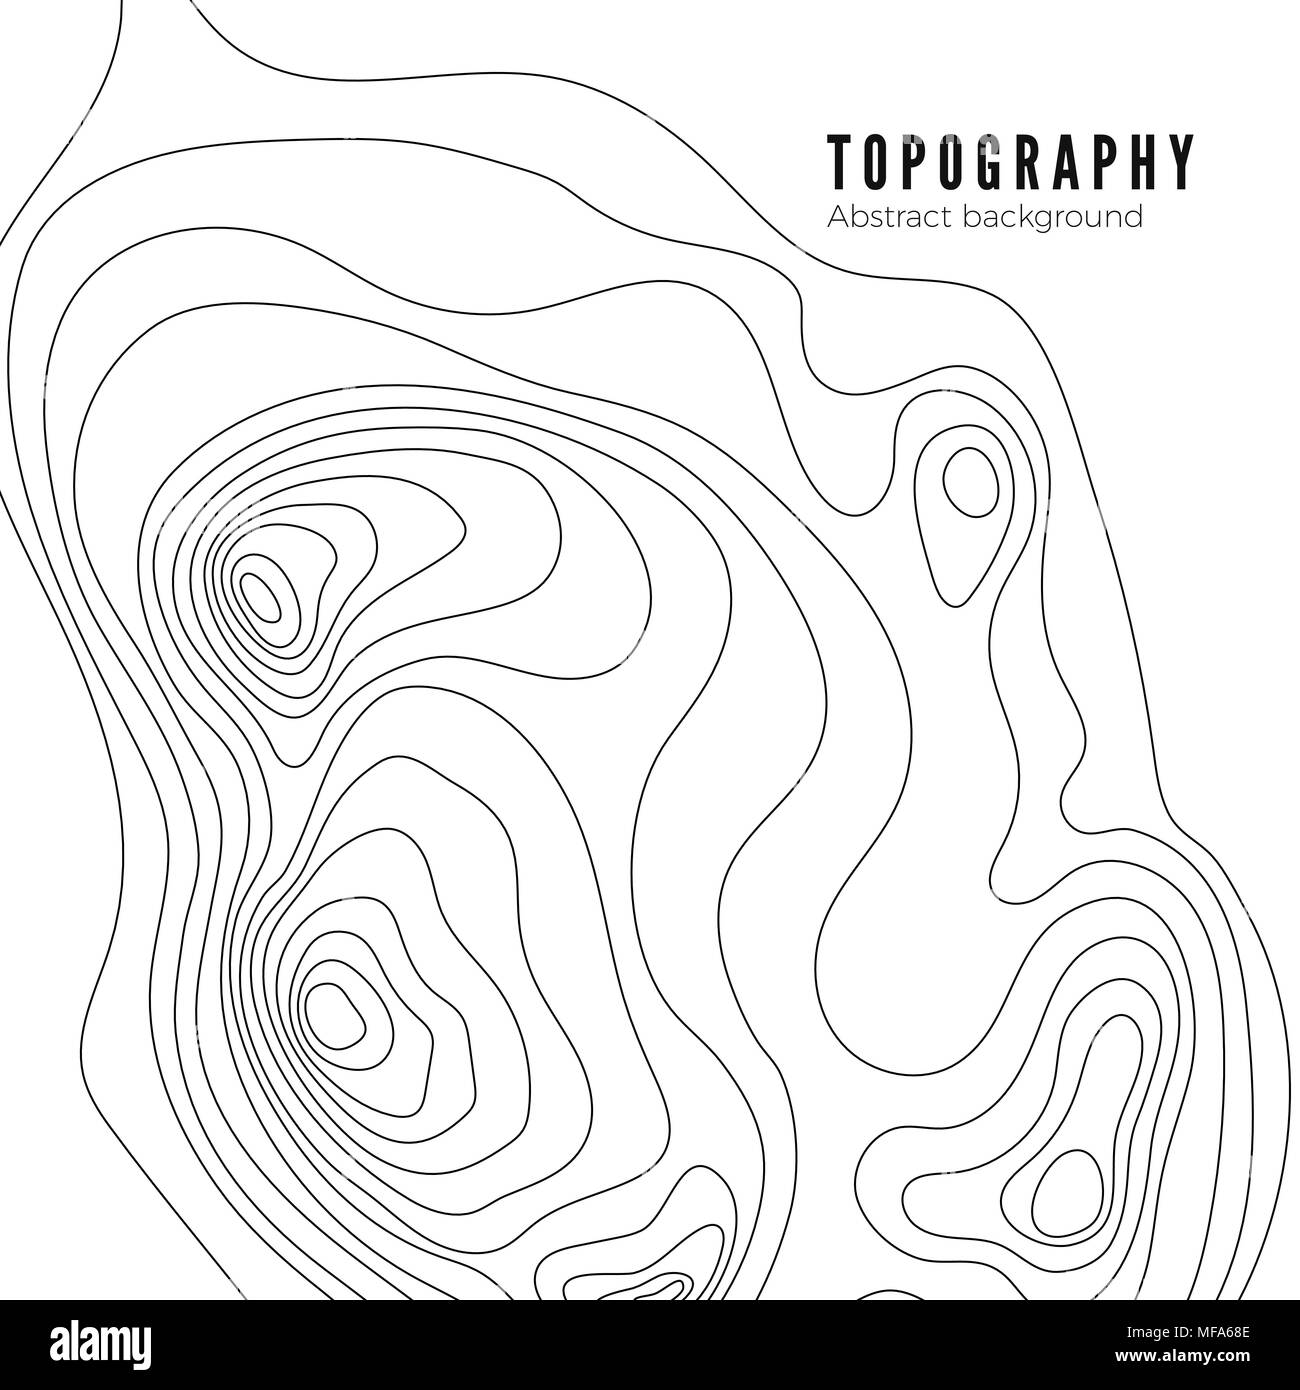 Topographic map contour background pattern contour landscape map topographic map contour background pattern contour landscape map concept abstract geographic world topography map vector illustration gumiabroncs Images